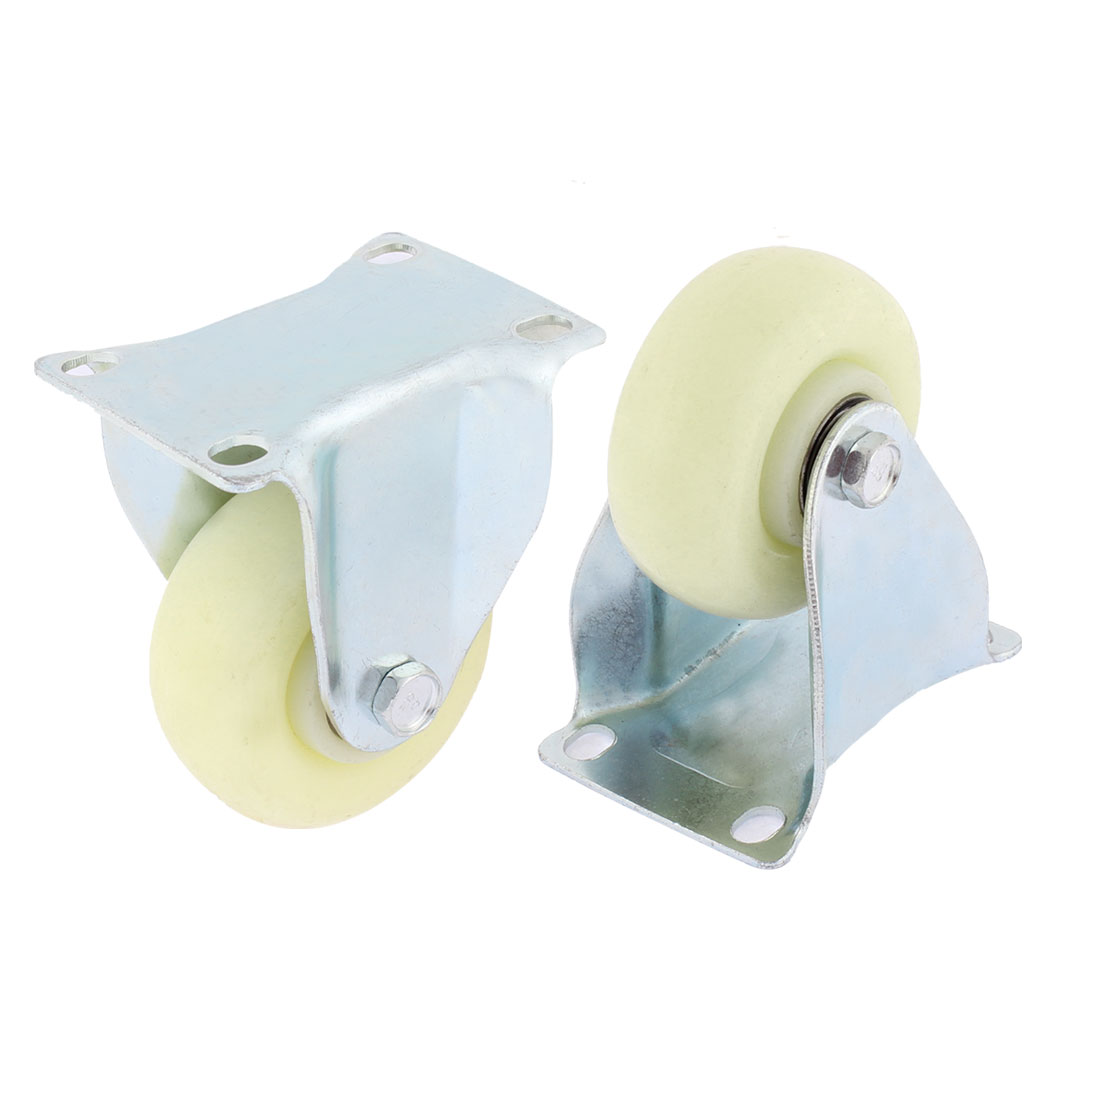 75mm Dia White Plastic Wheels Base Metal Top Plate Swivel Caster 2 Pcs